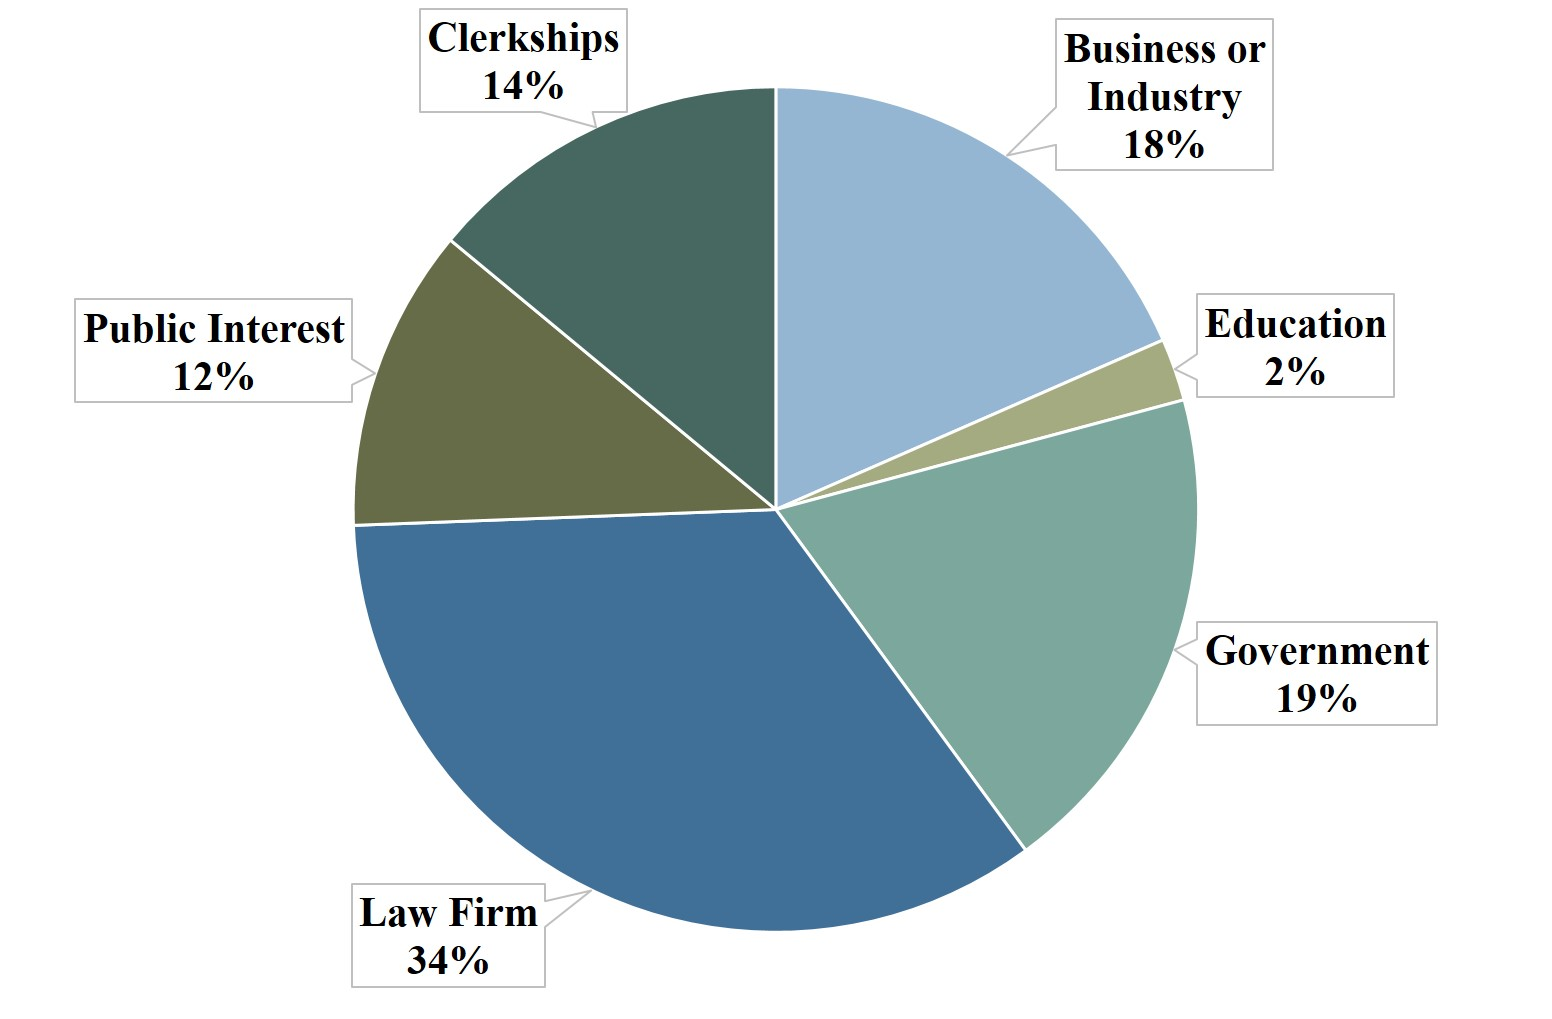 Number of graduates employed by sector in 2017: Business or Industry: 54 Education: 7 Government: 56 Law Firm: 101 Public Interest: 34 Clerkships: 41